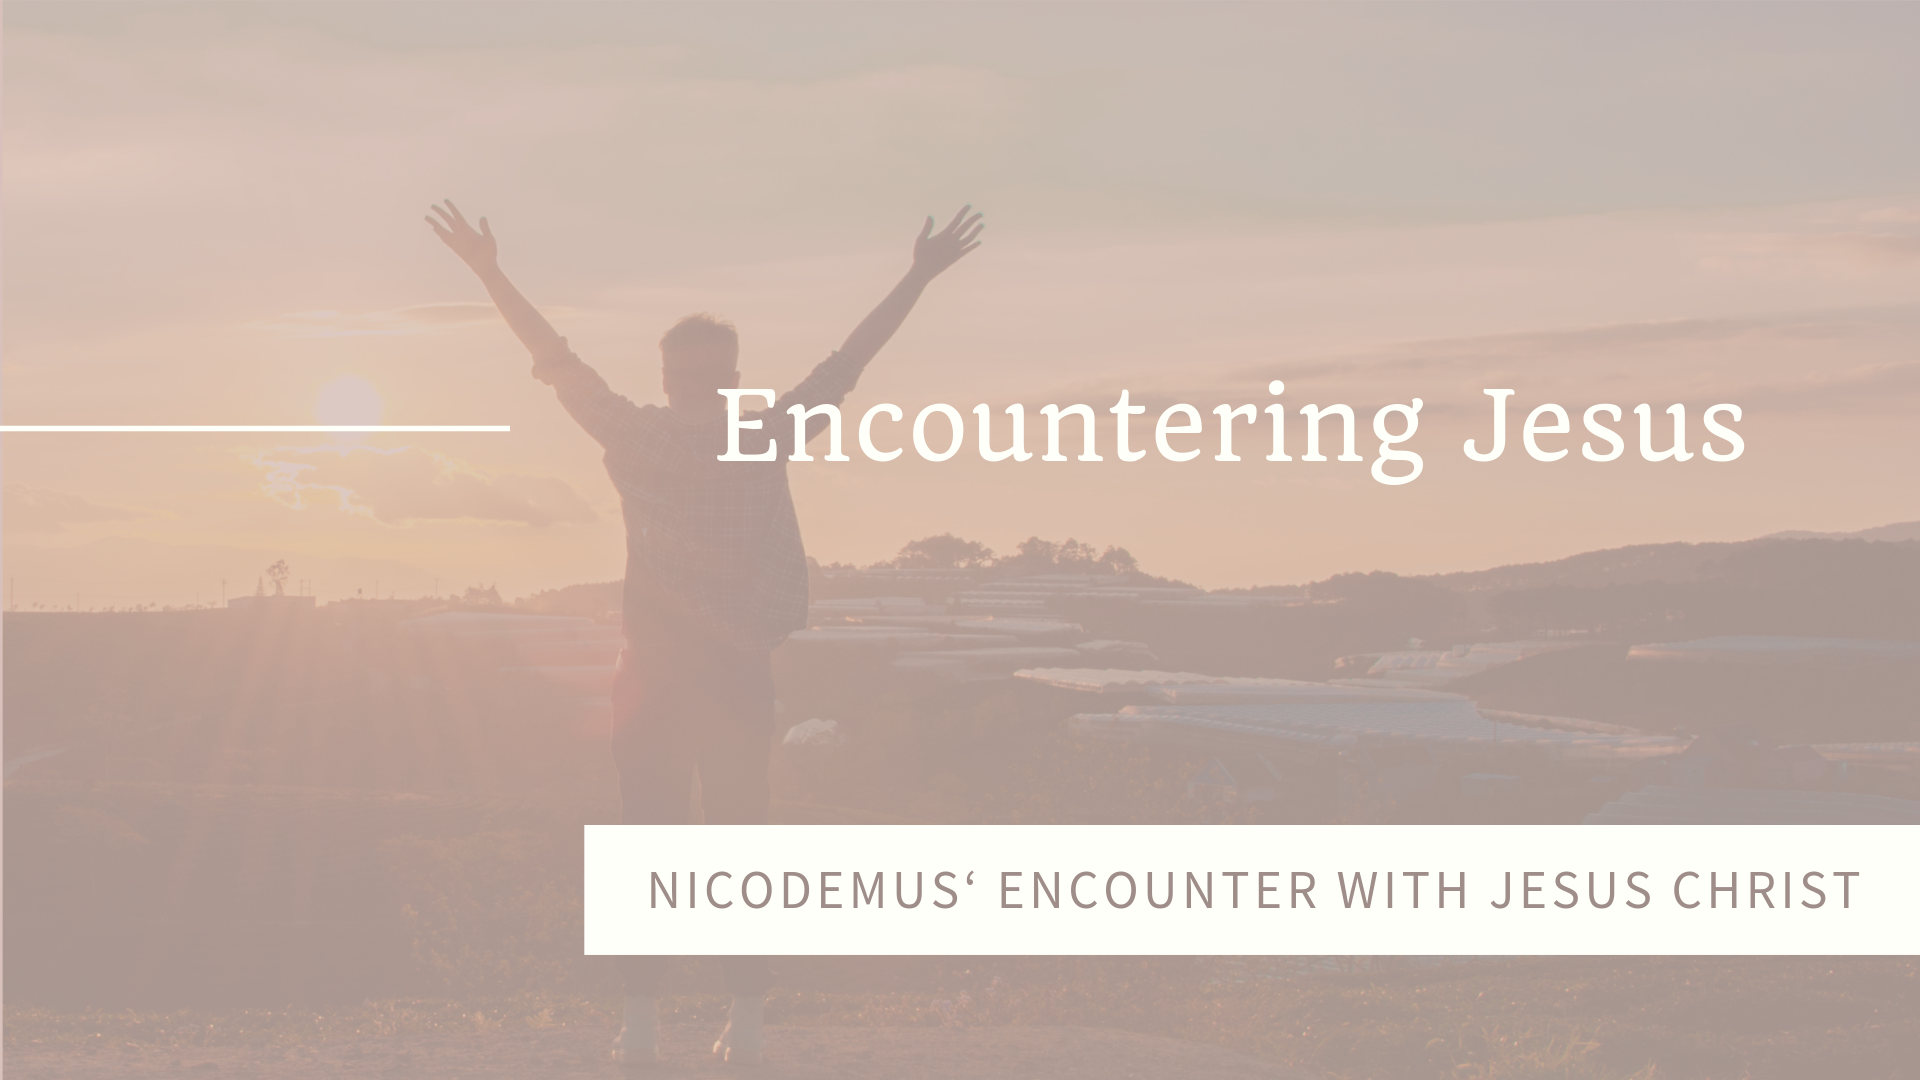 ICA Kyiv Sunday, May 5, 2019. Encountering Jesus: NICODEMUS' ENCOUNTER WITH JESUS CHRIST